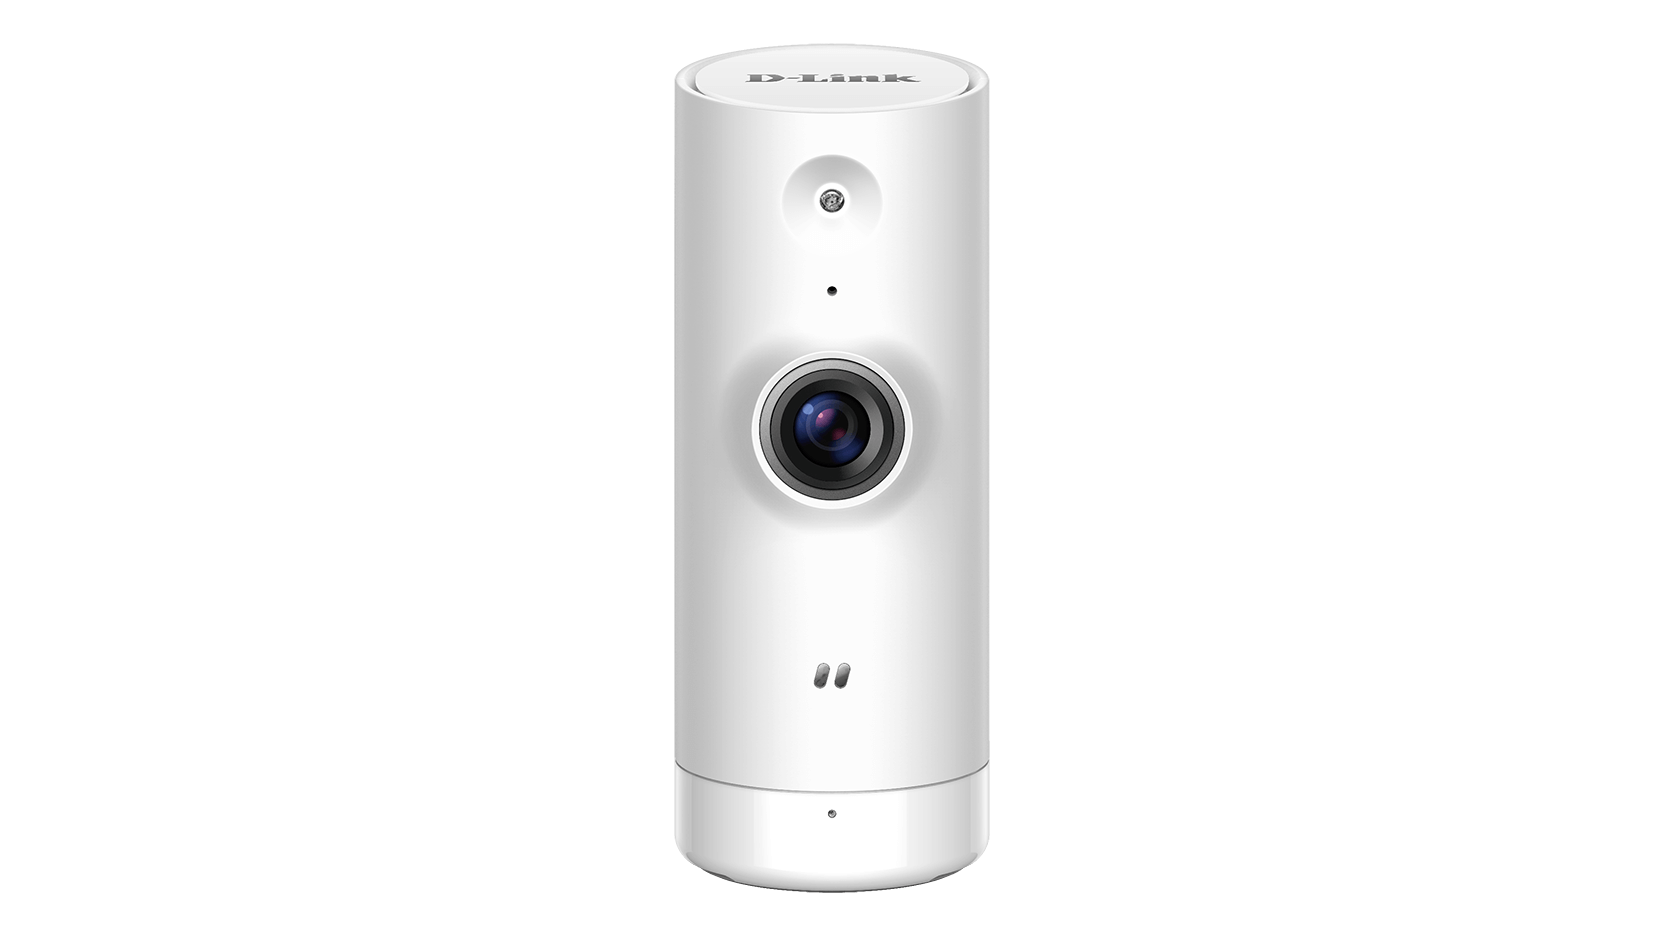 DCS-8000LH Mini HD Wi-Fi Camera